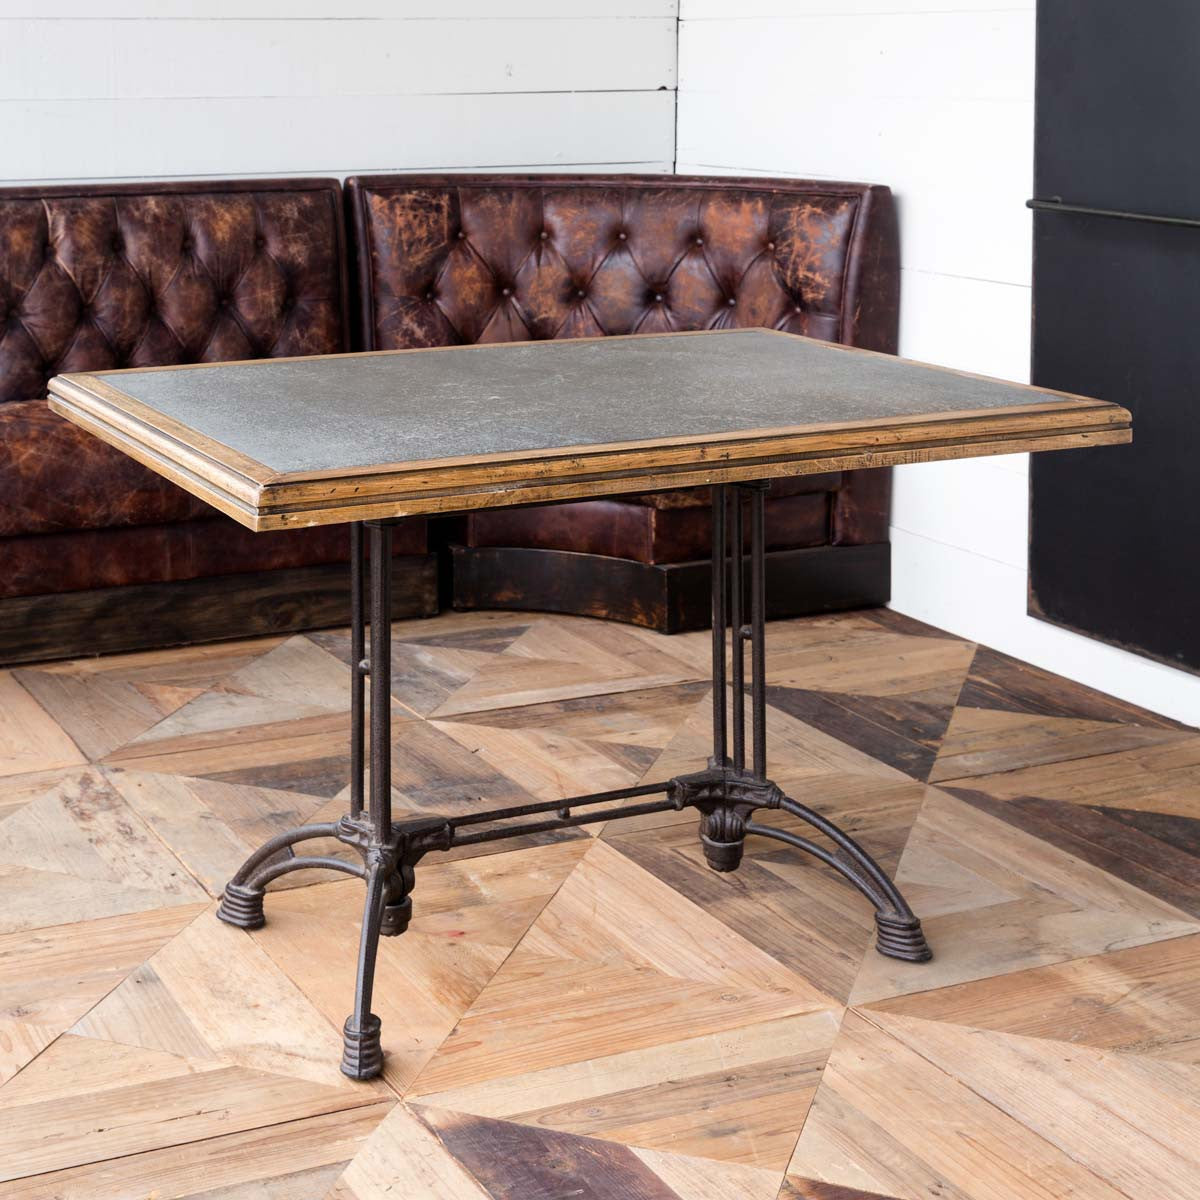 Zinc Top Café Table